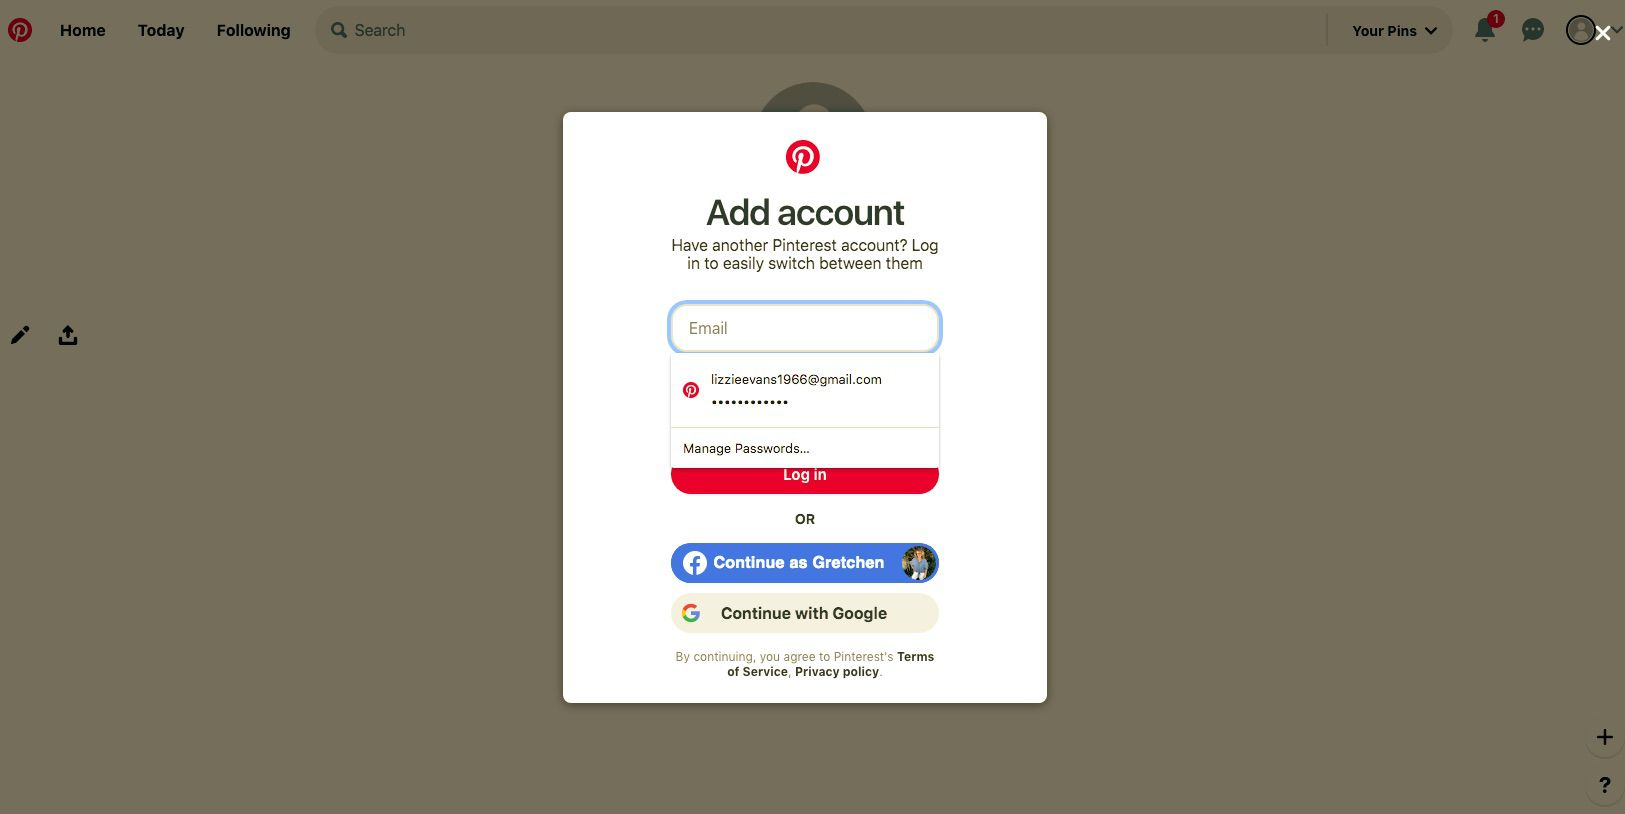 Select Add another account to create a new Pinterest account